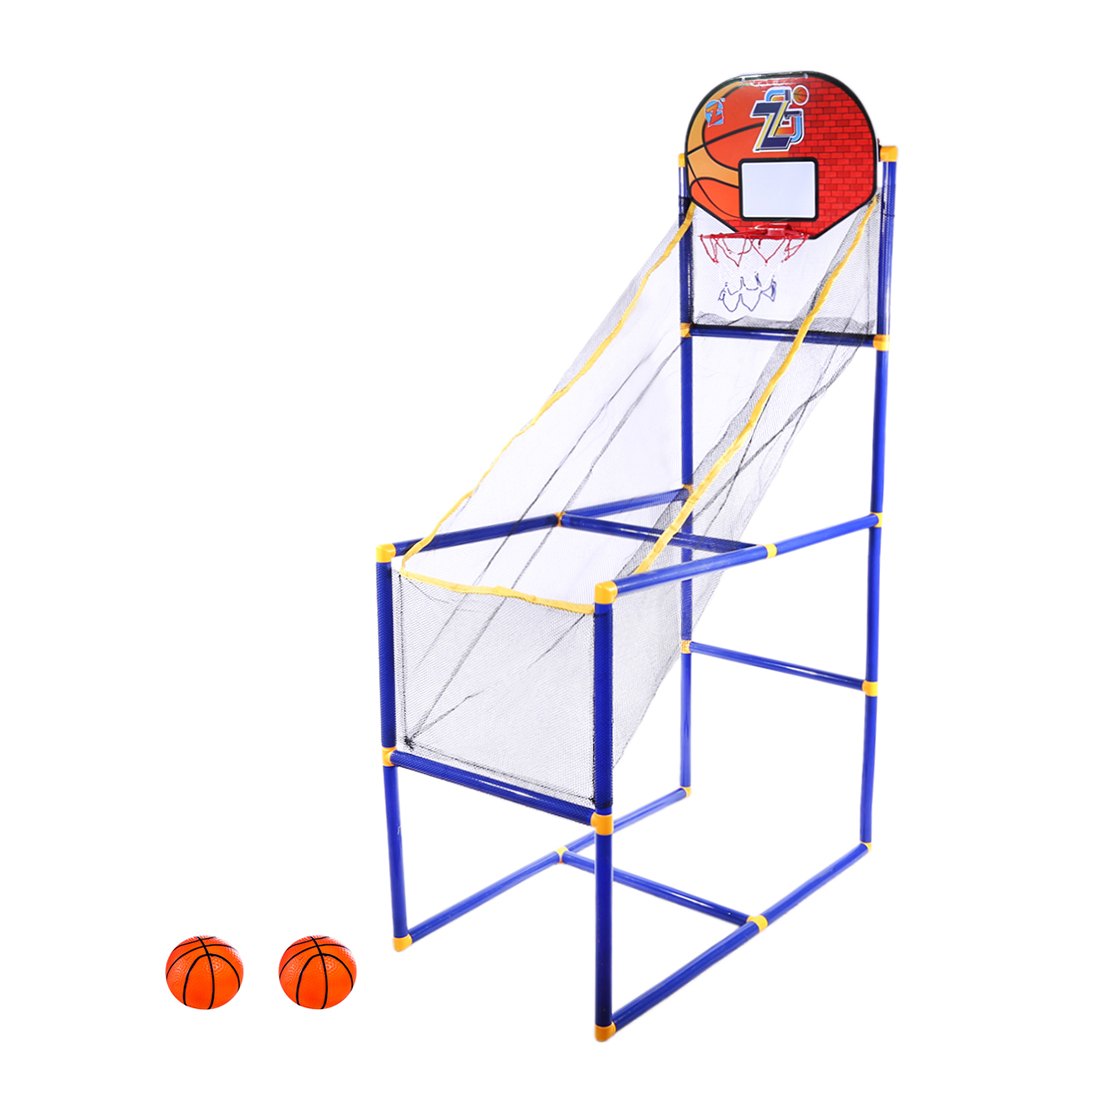 Surwish 125cm Children Sports Equipment Indoor Outdoor Basketball Shooting Toy For Kids Training Exercise- ZG270-29